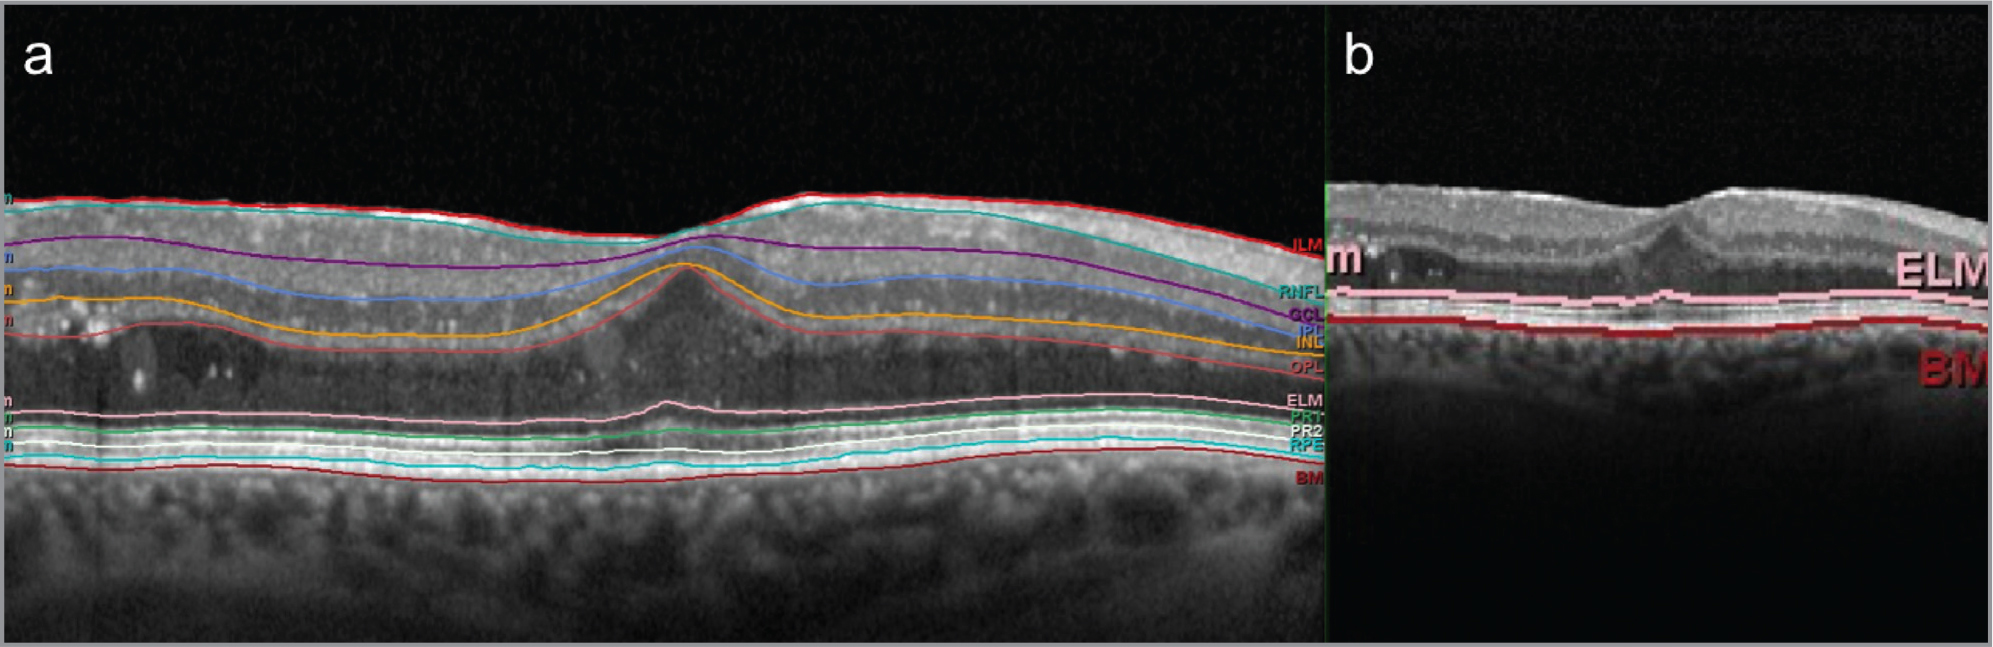 (A) OCT scan showing the automatic segmentation provided by the device's software: nerve fiber layer (ILM-RNFL), ganglion cell layer (RNFL-GCL), inner plexiform layer (GCL-IPL); inner nuclear layer (IPL-INL); outer plexiform layer (INL-OPL); Henle's fiber layer plus outer nuclear layer (OPL-ELM); outer retinal layers (ELM-BM, including external limiting membrane plus myoid zone of the photoreceptors plus ellipsoid zone of the photoreceptors plus outer segments of the photoreceptors plus cone interdigitation with RPE and RPE / Bruch's membrane complex). (B) The same OCT scan considering only the outer retinal layers as automatically provided by the device. OCT = optical coherence tomography; ILM = internal limiting membrane; RNFL = retinal nerve fiber layer; GCL = ganglion cell layer; IPL = inner plexiform layer; INL = inner nuclear layer; OPL = outer plexiform layer; ONL = outer nuclear layer; ELM = external limiting membrane; PR1/PR2 = photoreceptors layers; RPE = retinal pigment epithelium; BM = Bruch's membrane.